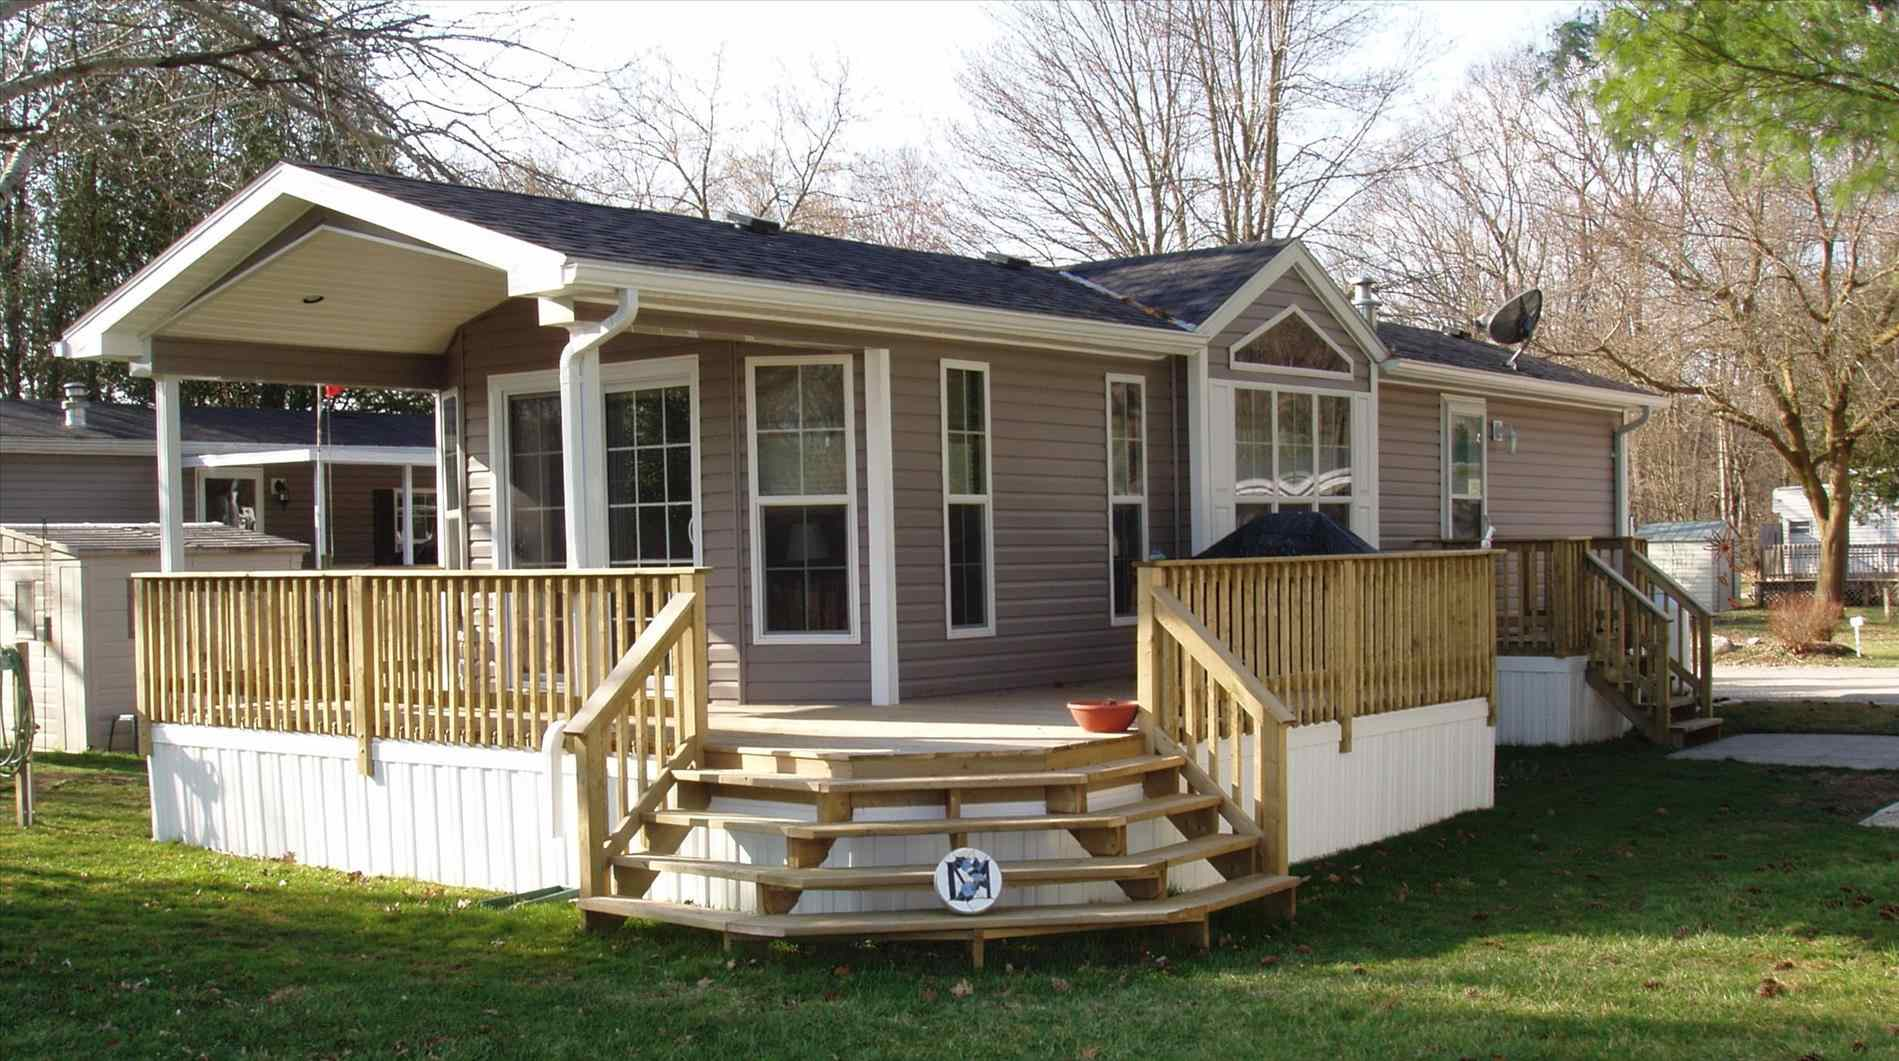 Inspiring Home Design Ideas with Mobile Home Porches: Mobile Home Porches | Mobile Home Screen Porch | Mobile Home Patio Enclosures